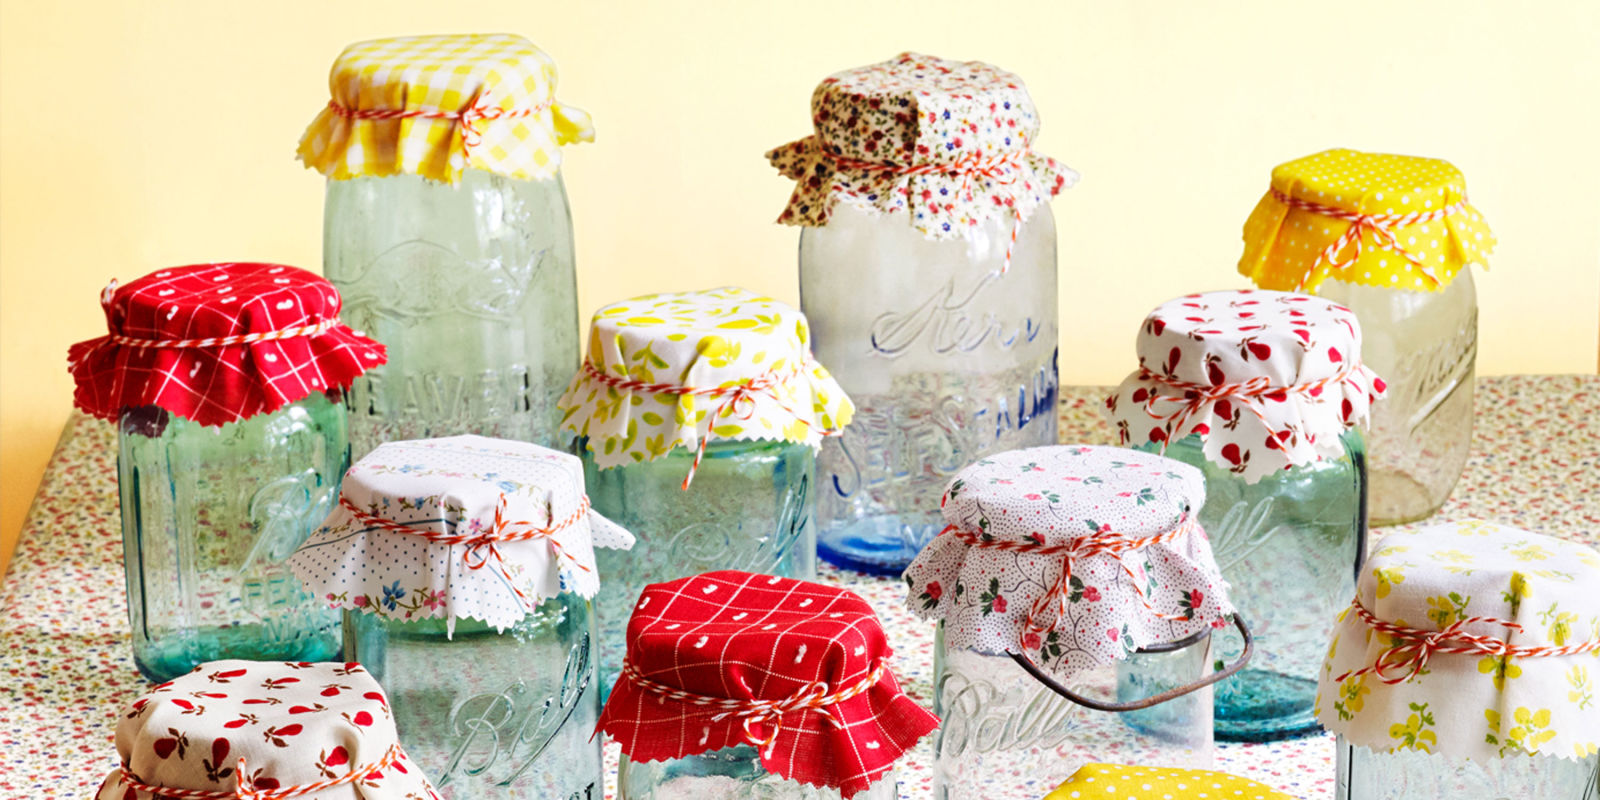 Decorating Mason Jars 50 Great Mason Jar Ideas Easy Uses For Mason Jars